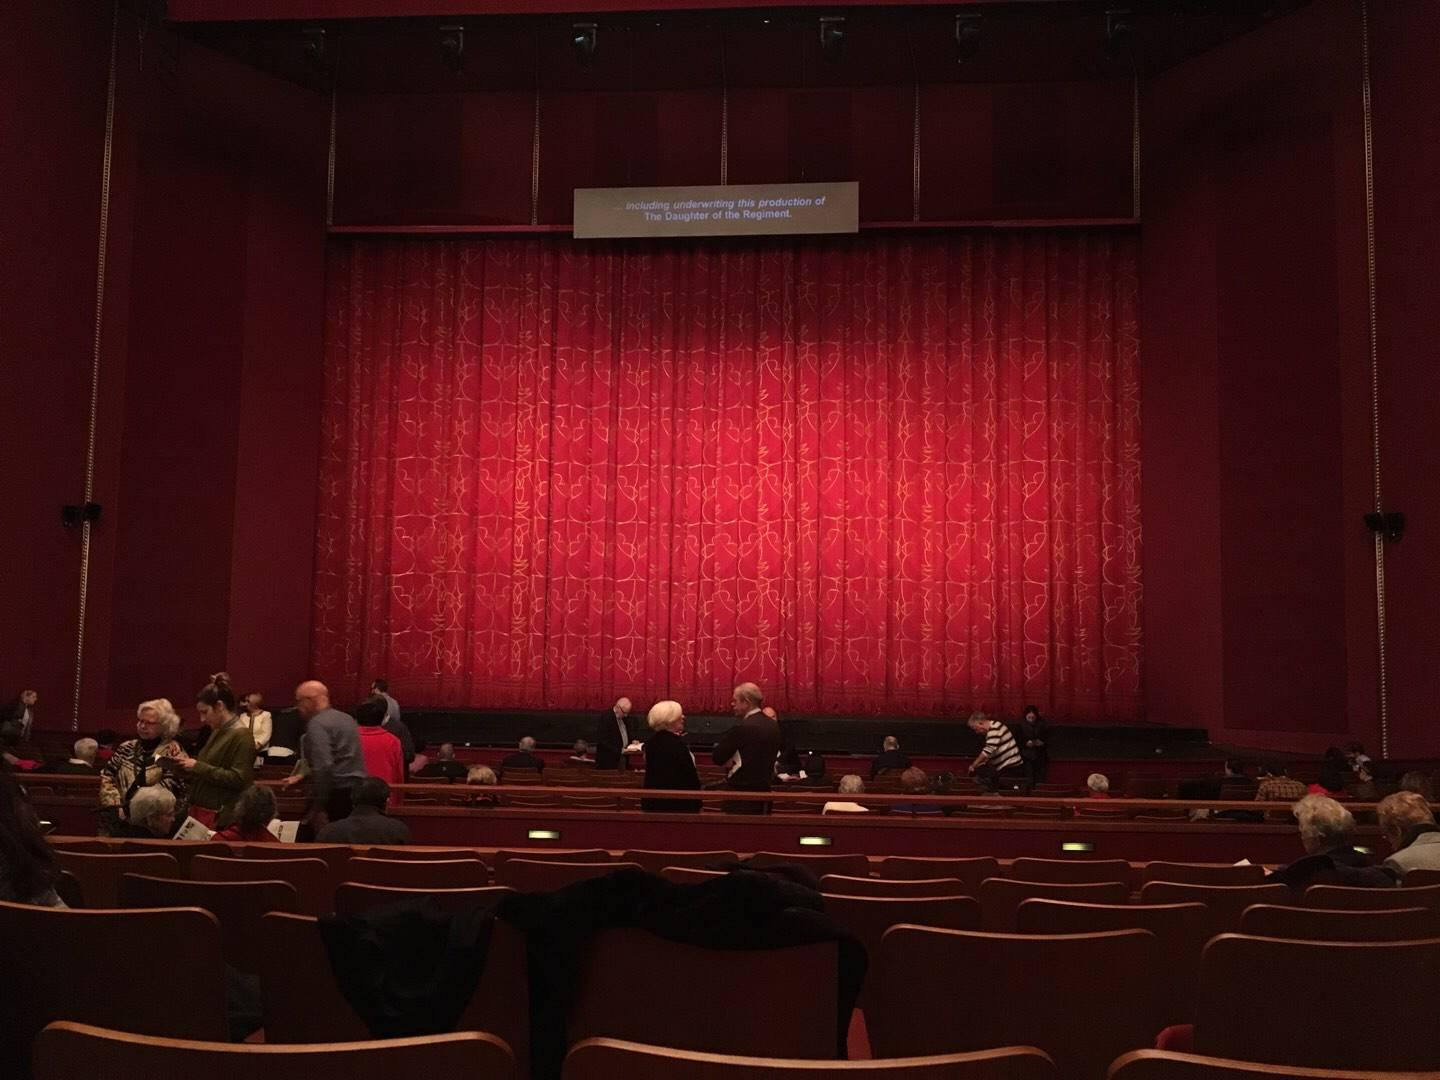 The Kennedy Center Opera House Section Orch Row Y Seat 112